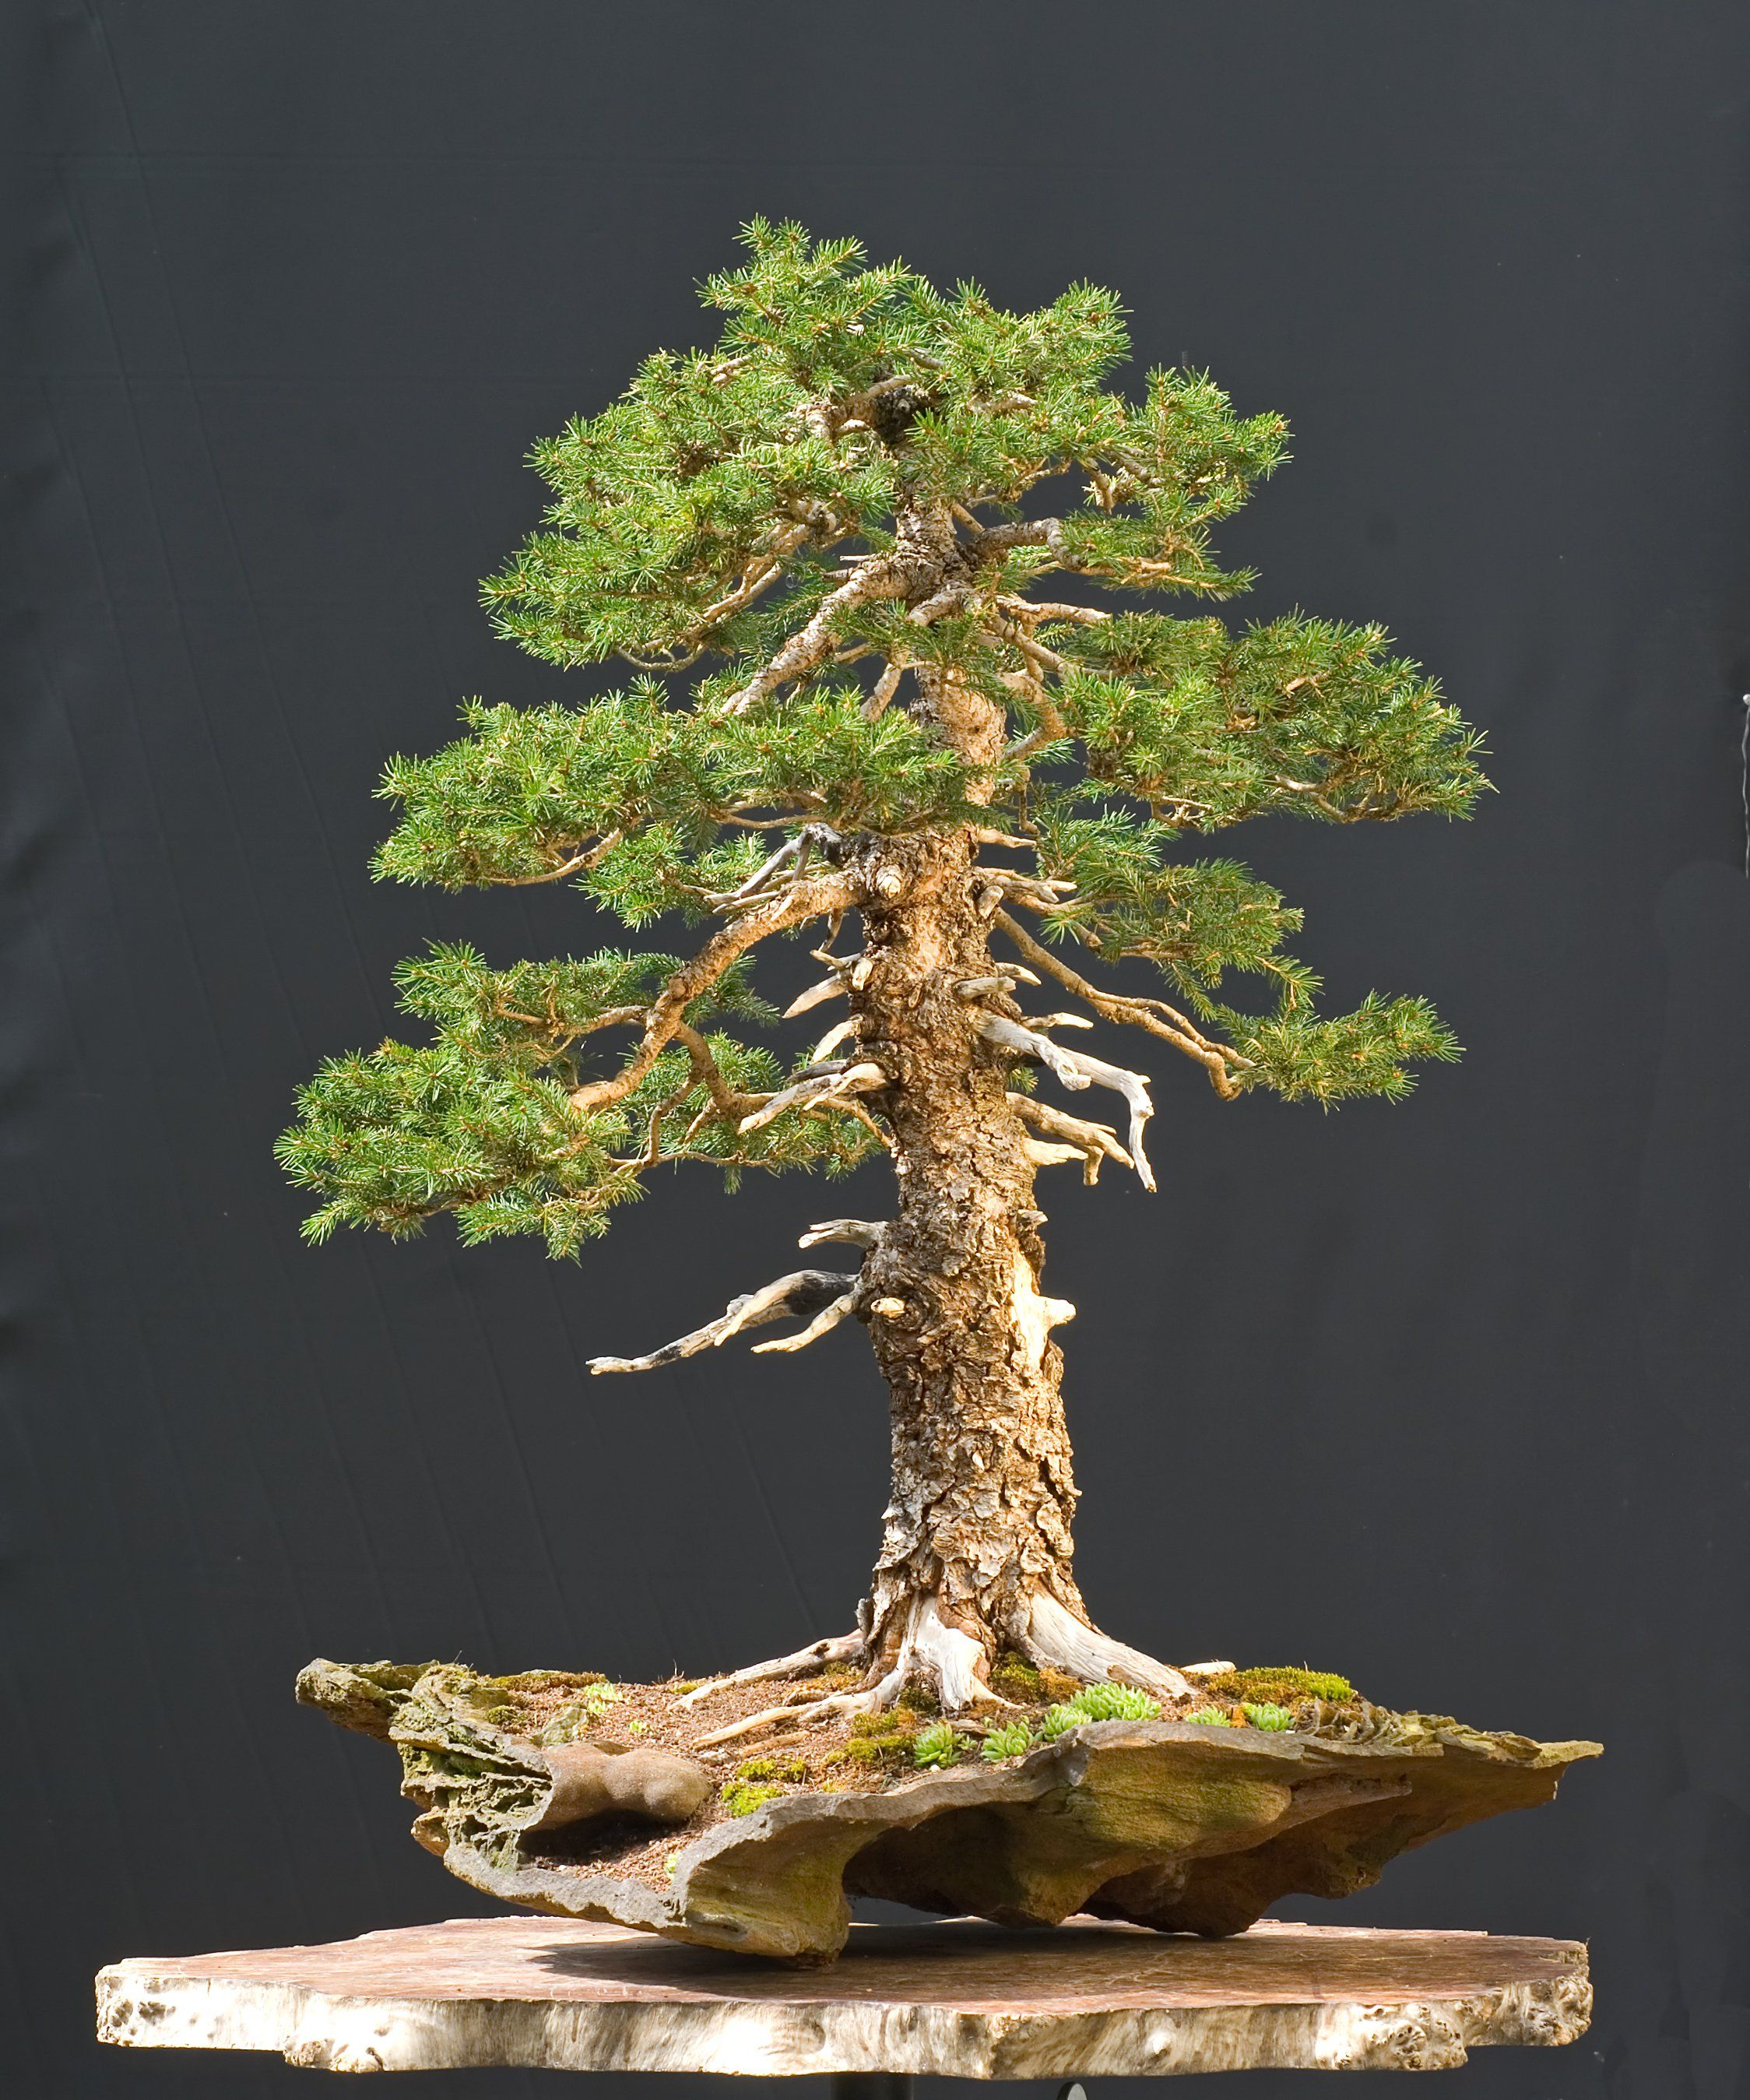 Coniferous Bonsai Trees Bonsai art, Bonsai tree care, Bonsai